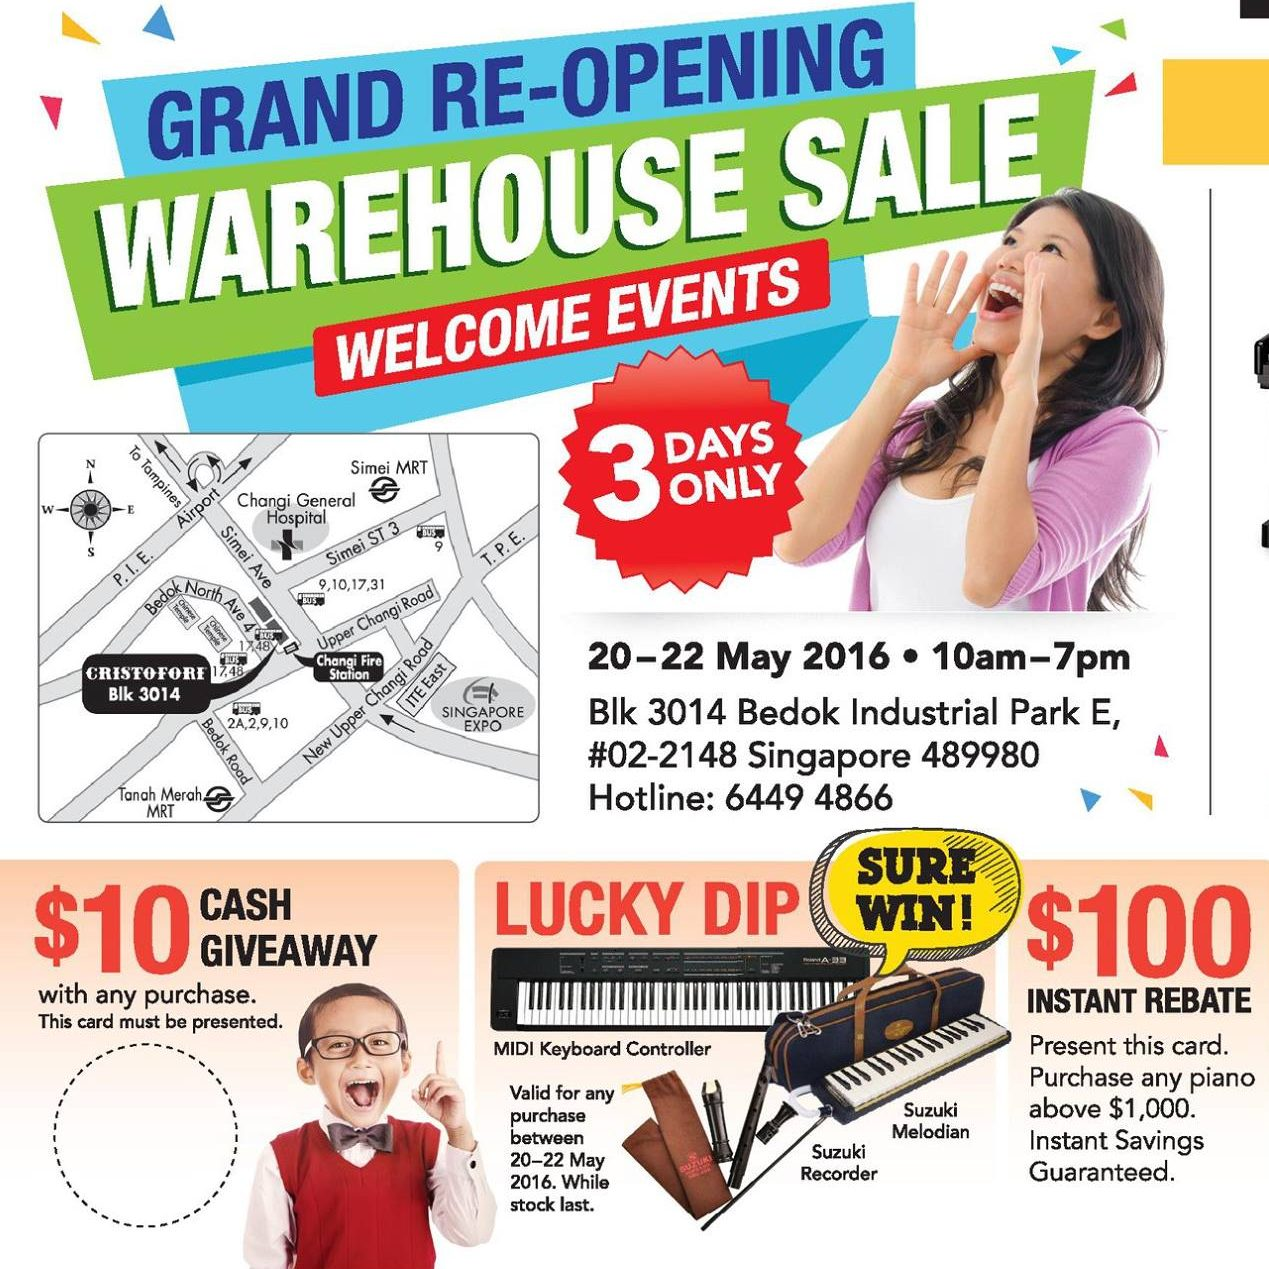 Christofori Grand Re-opening Warehouse Sale 20 to 22 May 2016